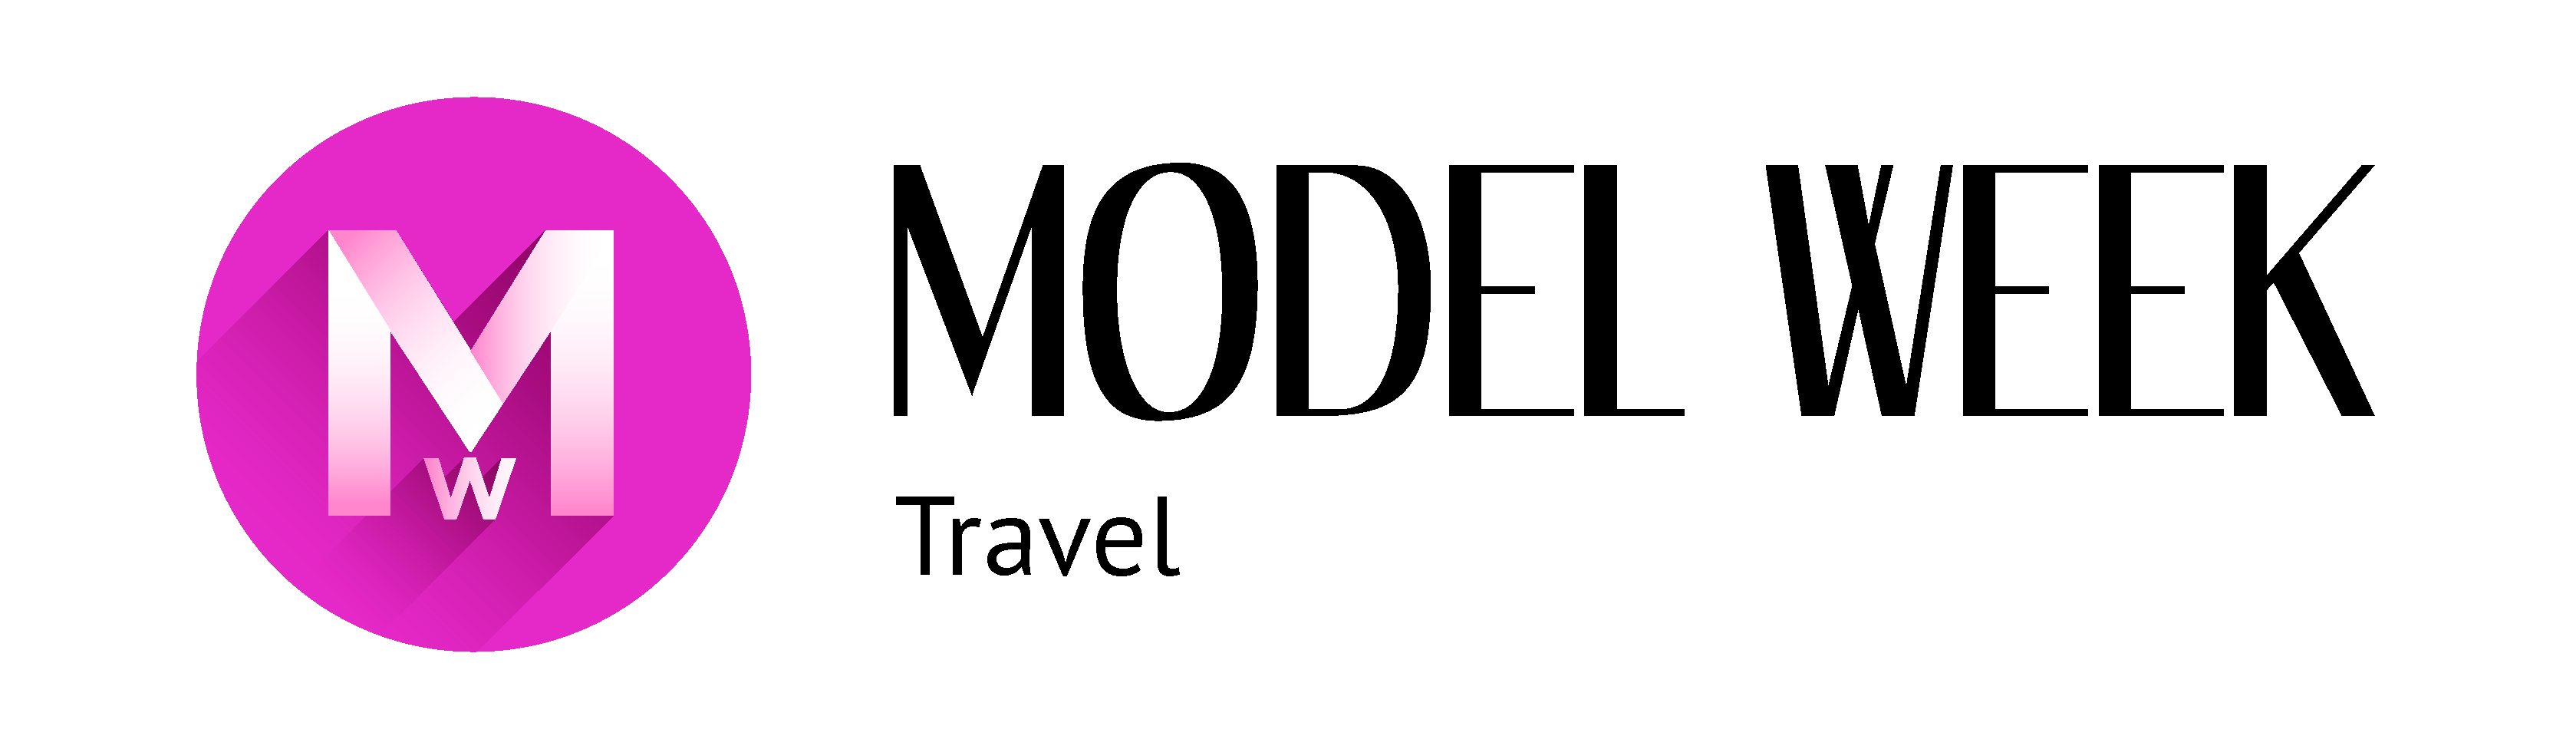 MODEL WEEK Travel